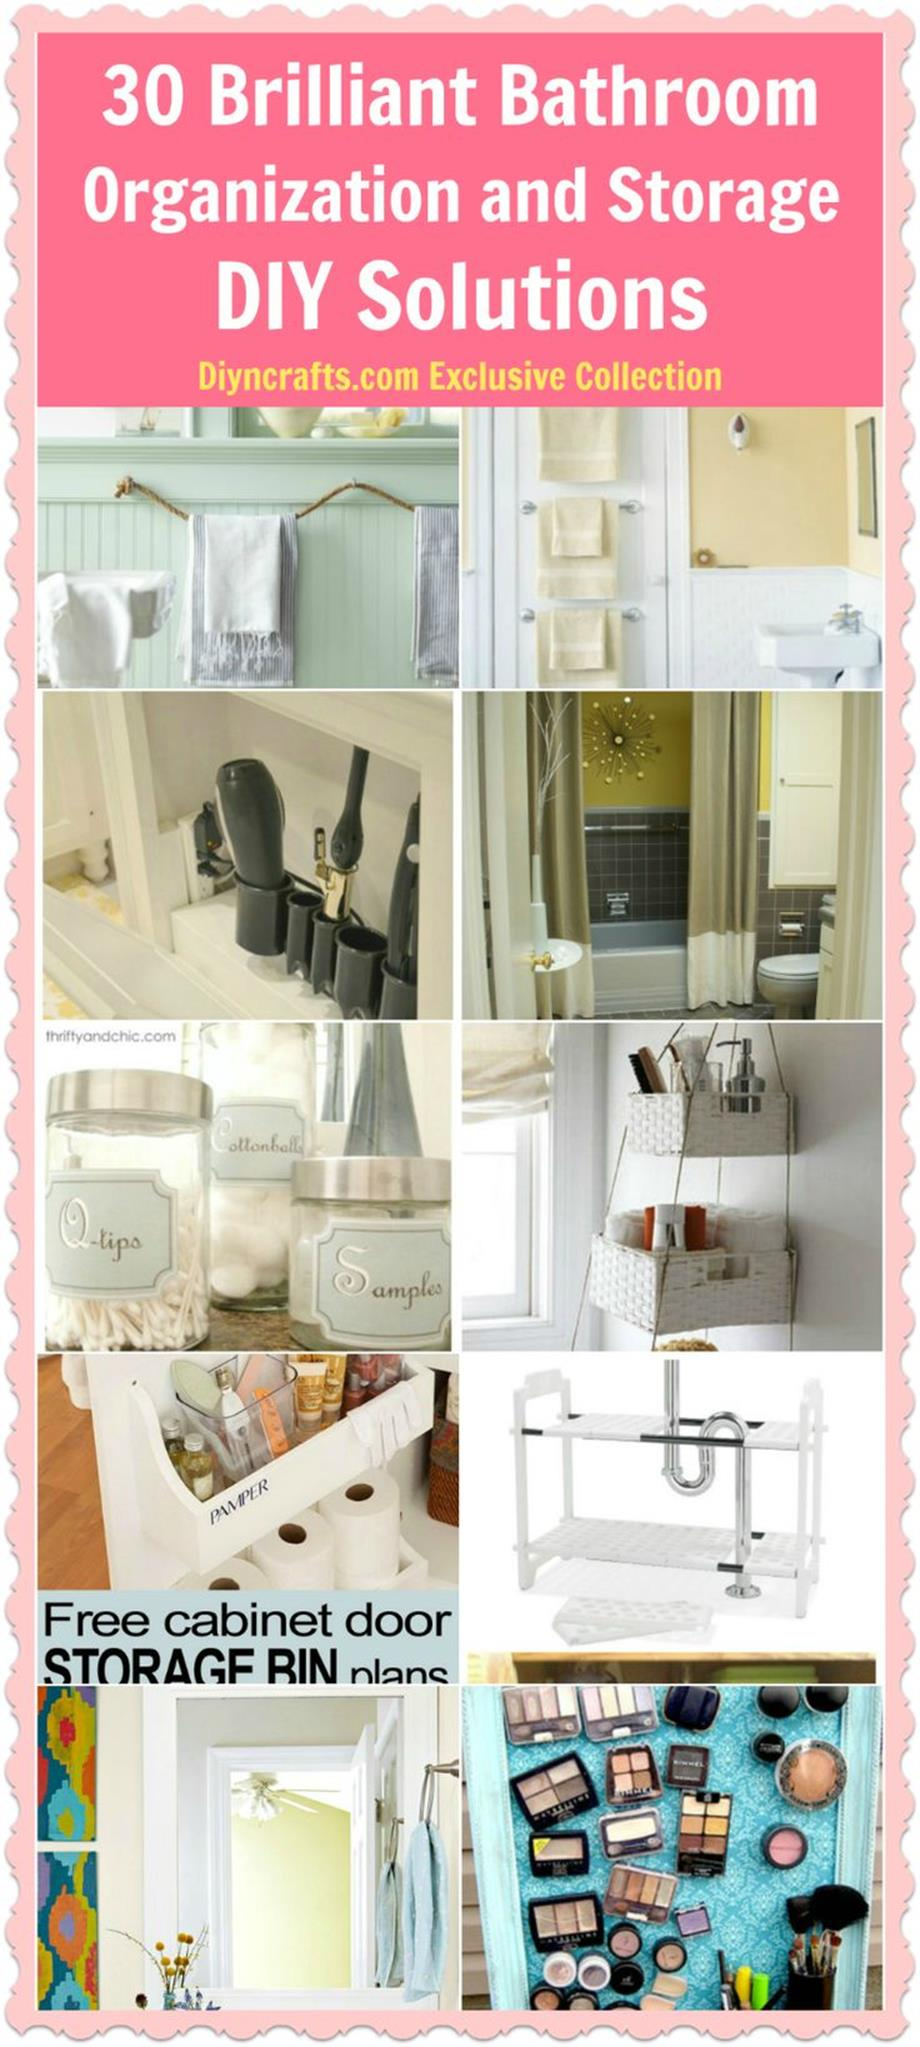 DIY Bathroom Organization Ideas On a Budget 3